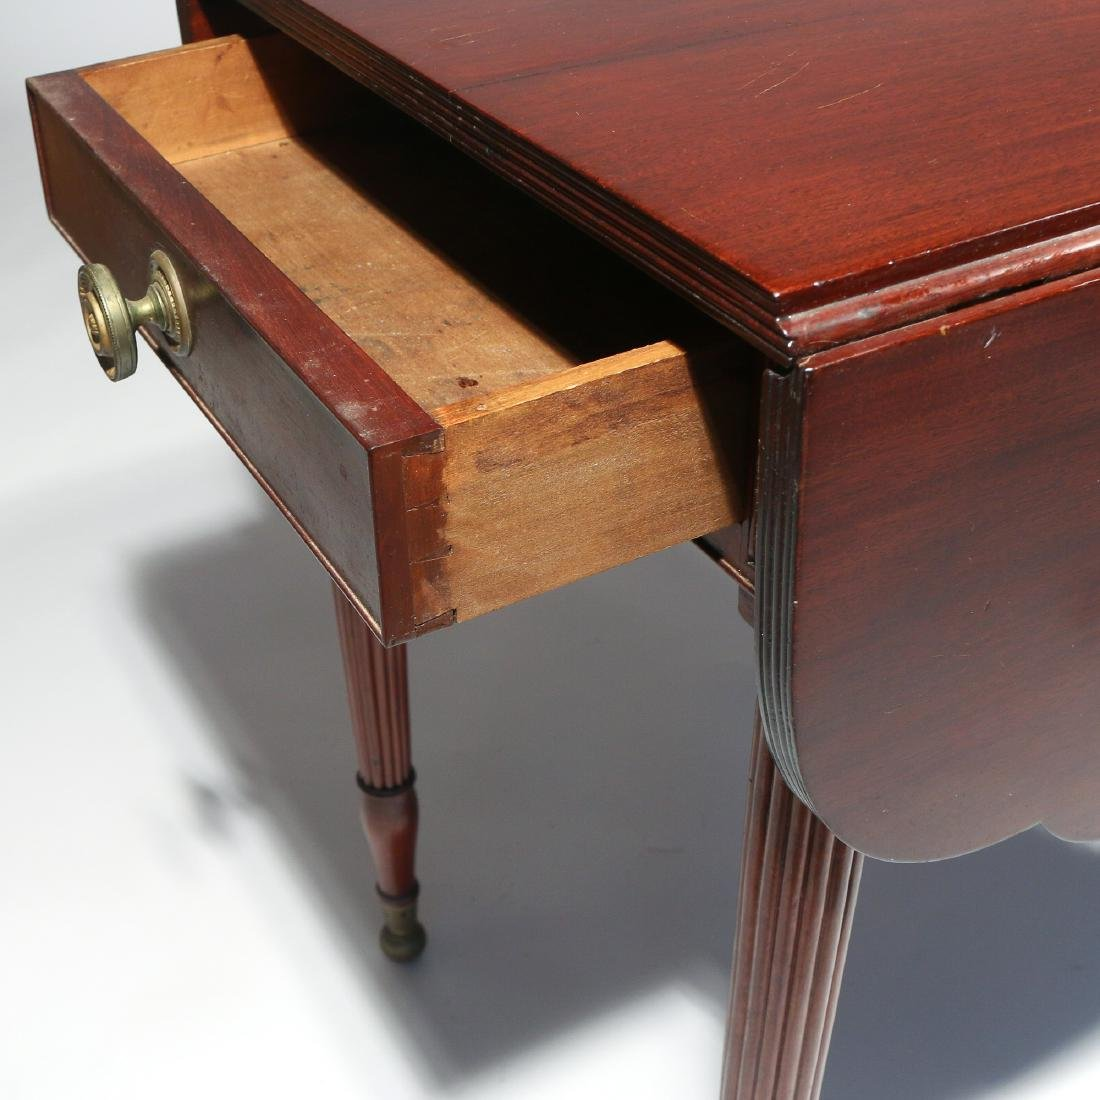 LATE FEDERAL CARVED MAHOGANY PEMBROKE TABLE - 5